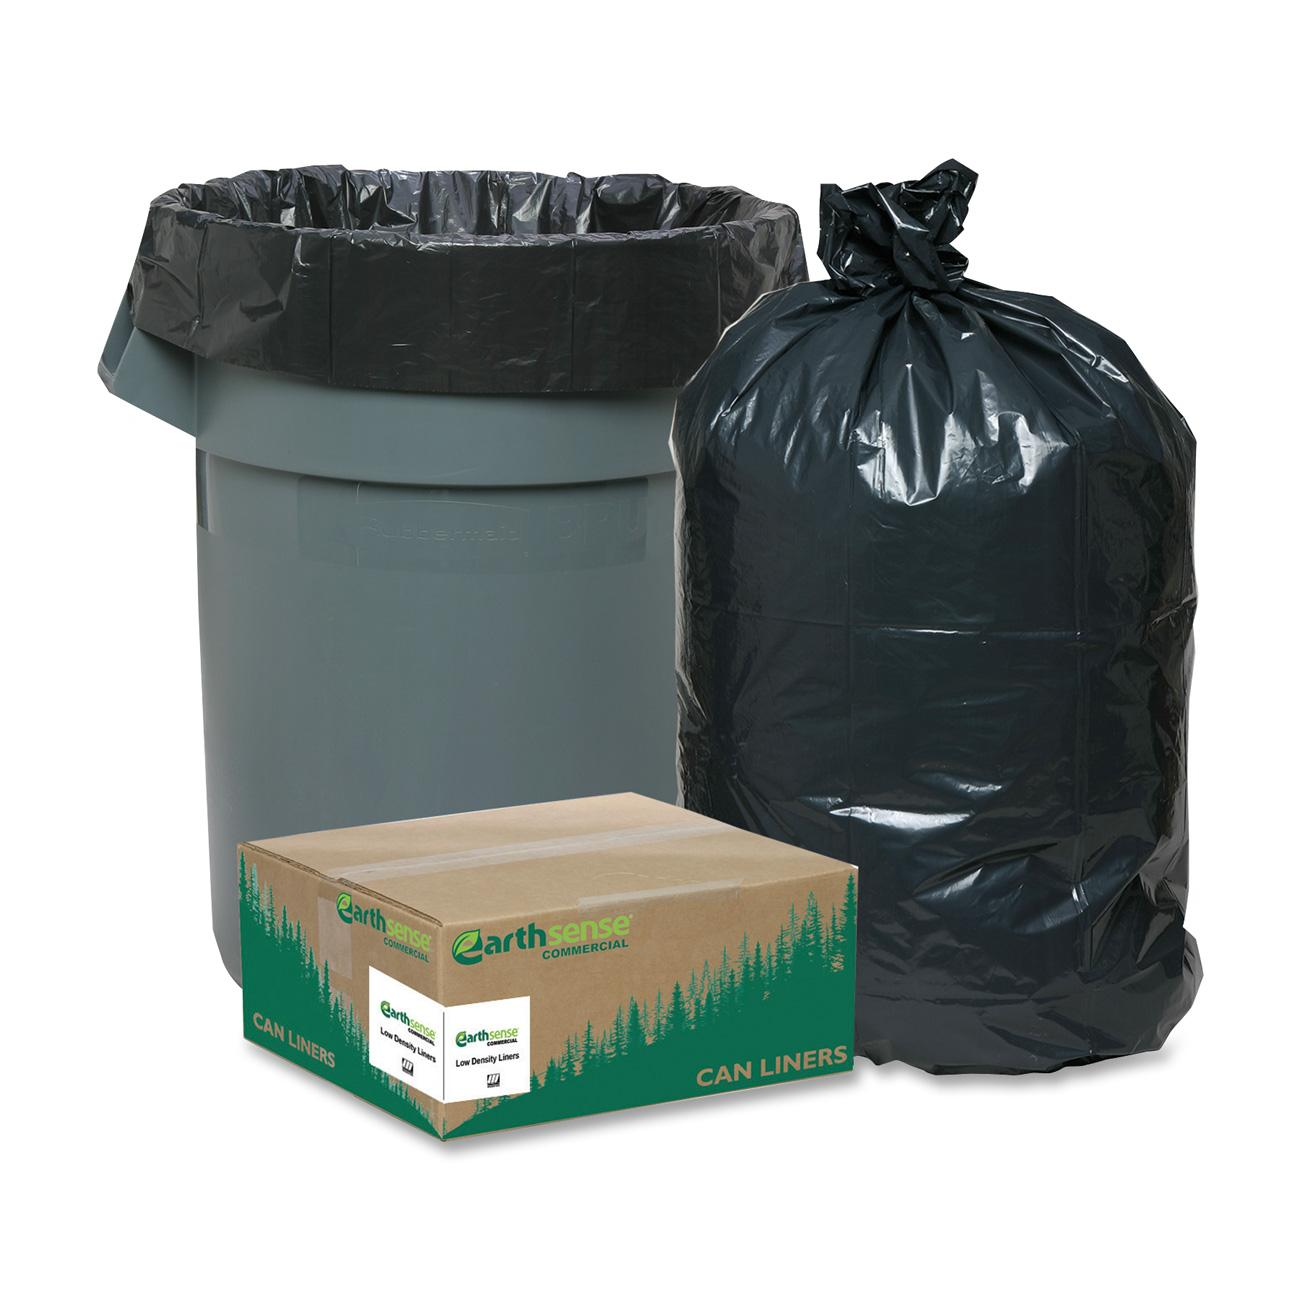 Webster, WBIRNW2410, Reclaim Heavy-Duty Recyled Can Liners, 500 / Carton, Black